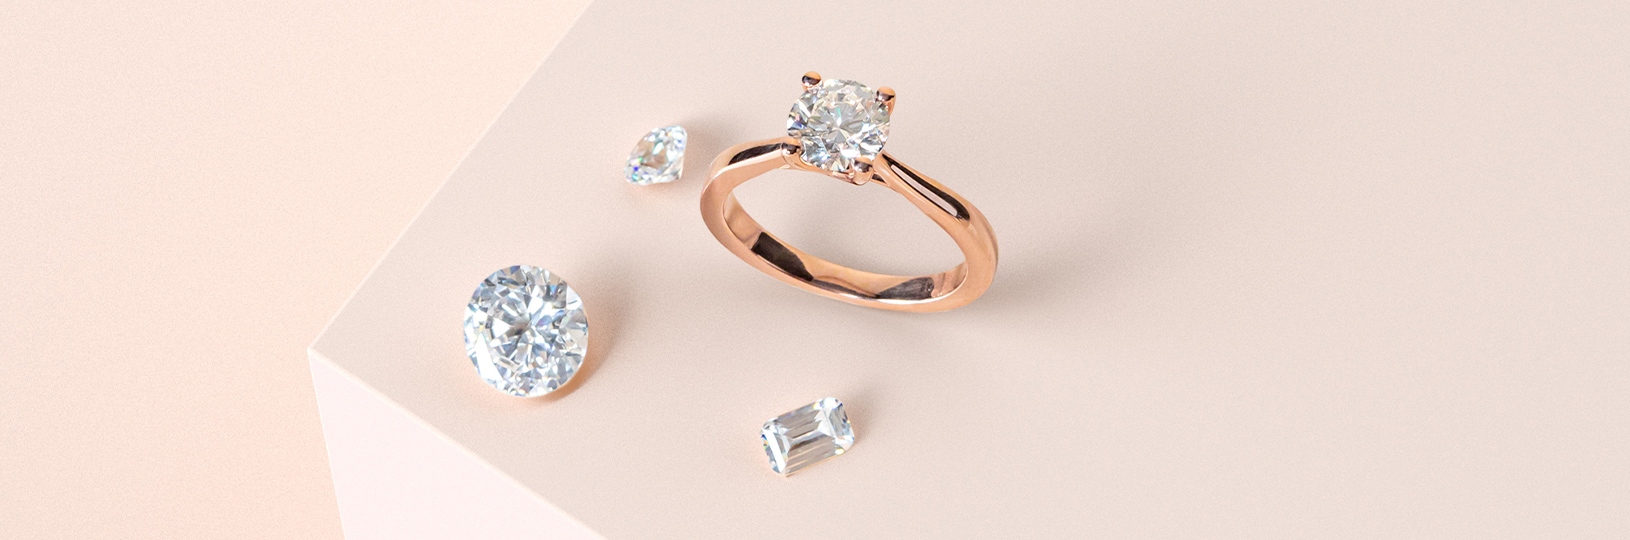 A round cut lab grown diamond in a rose gold setting